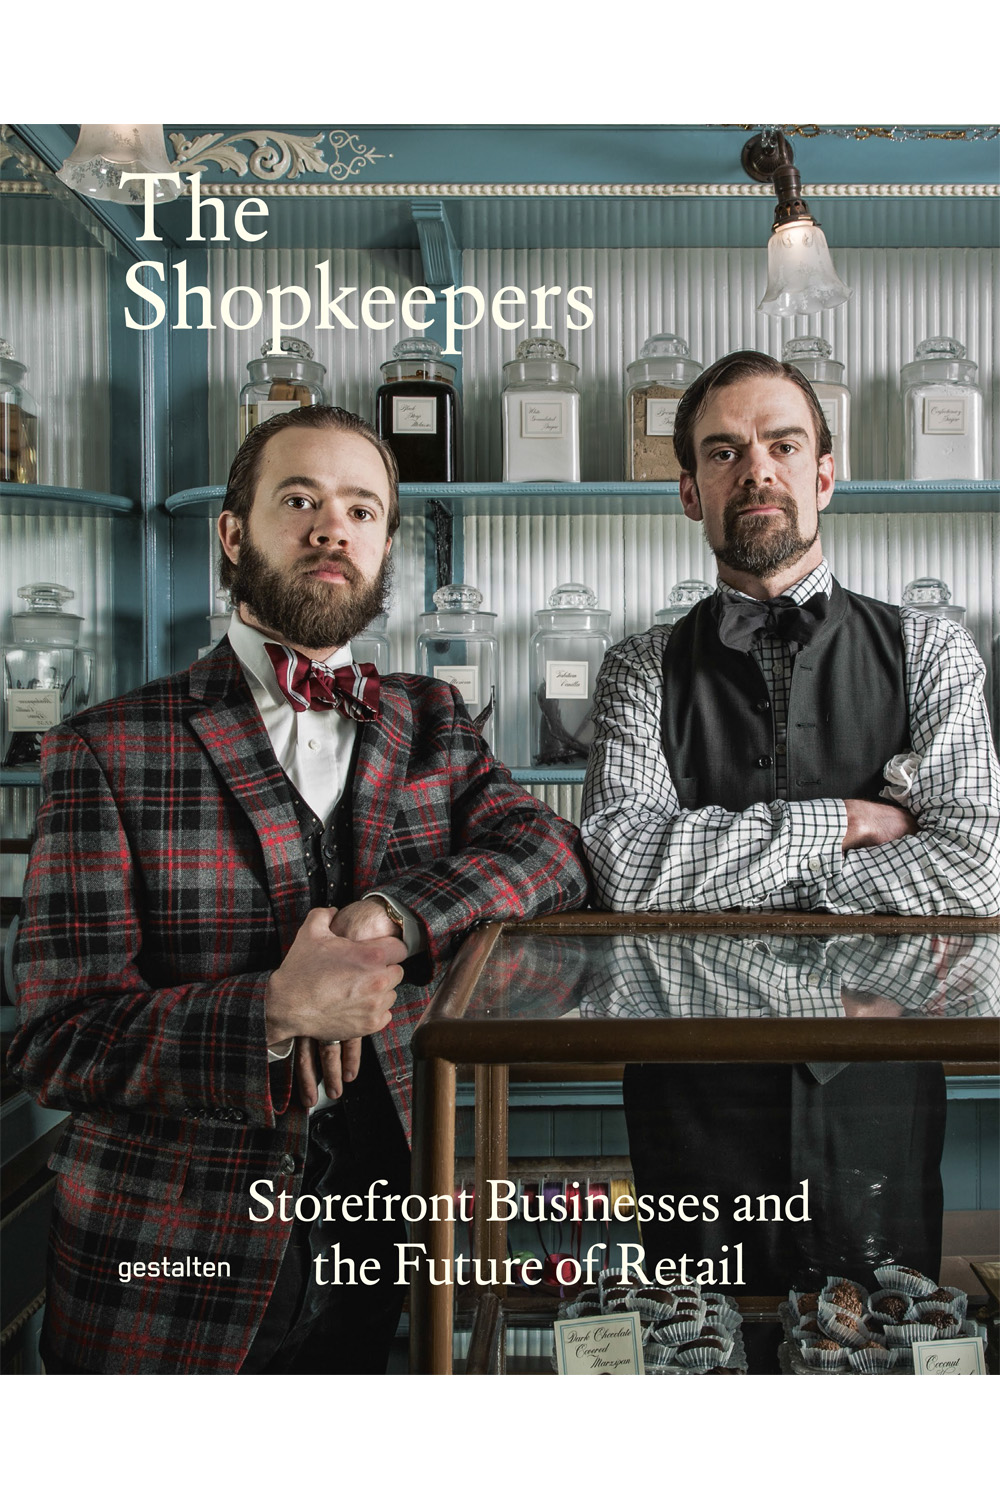 The Shopkeepers, Little Catch & Factory Five, Feb 2016